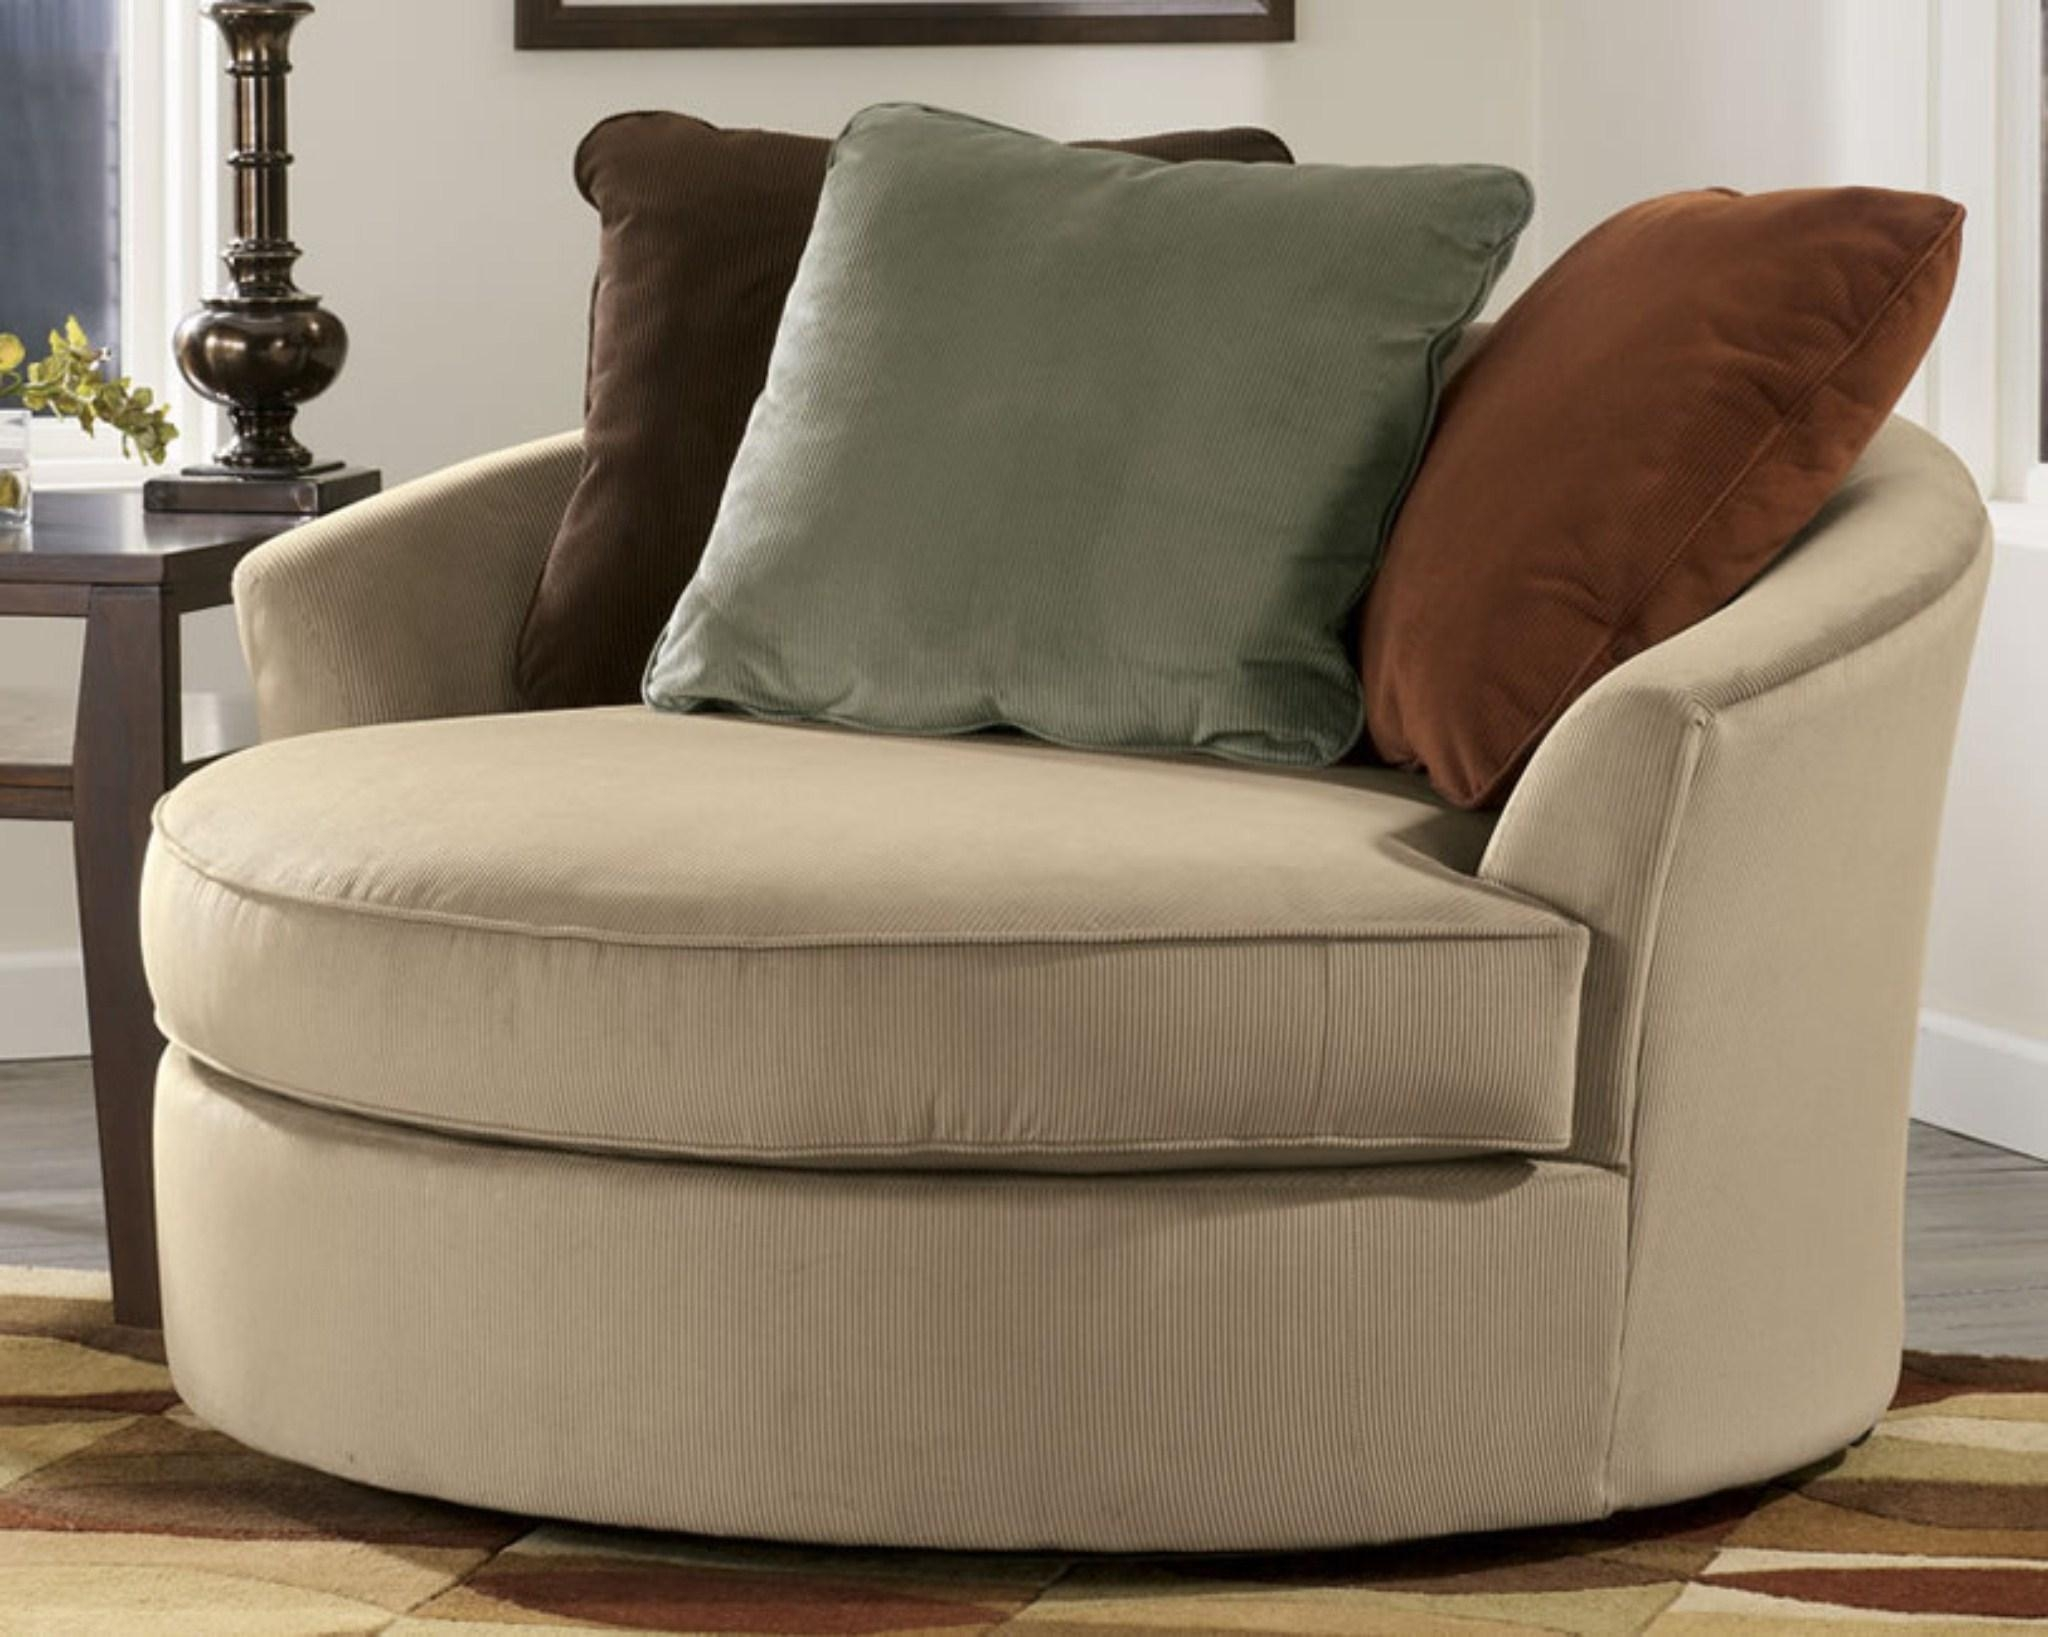 Round Swivel Sofa Chair – Leather Sectional Sofa Throughout Swivel Sofa Chairs (Image 11 of 20)